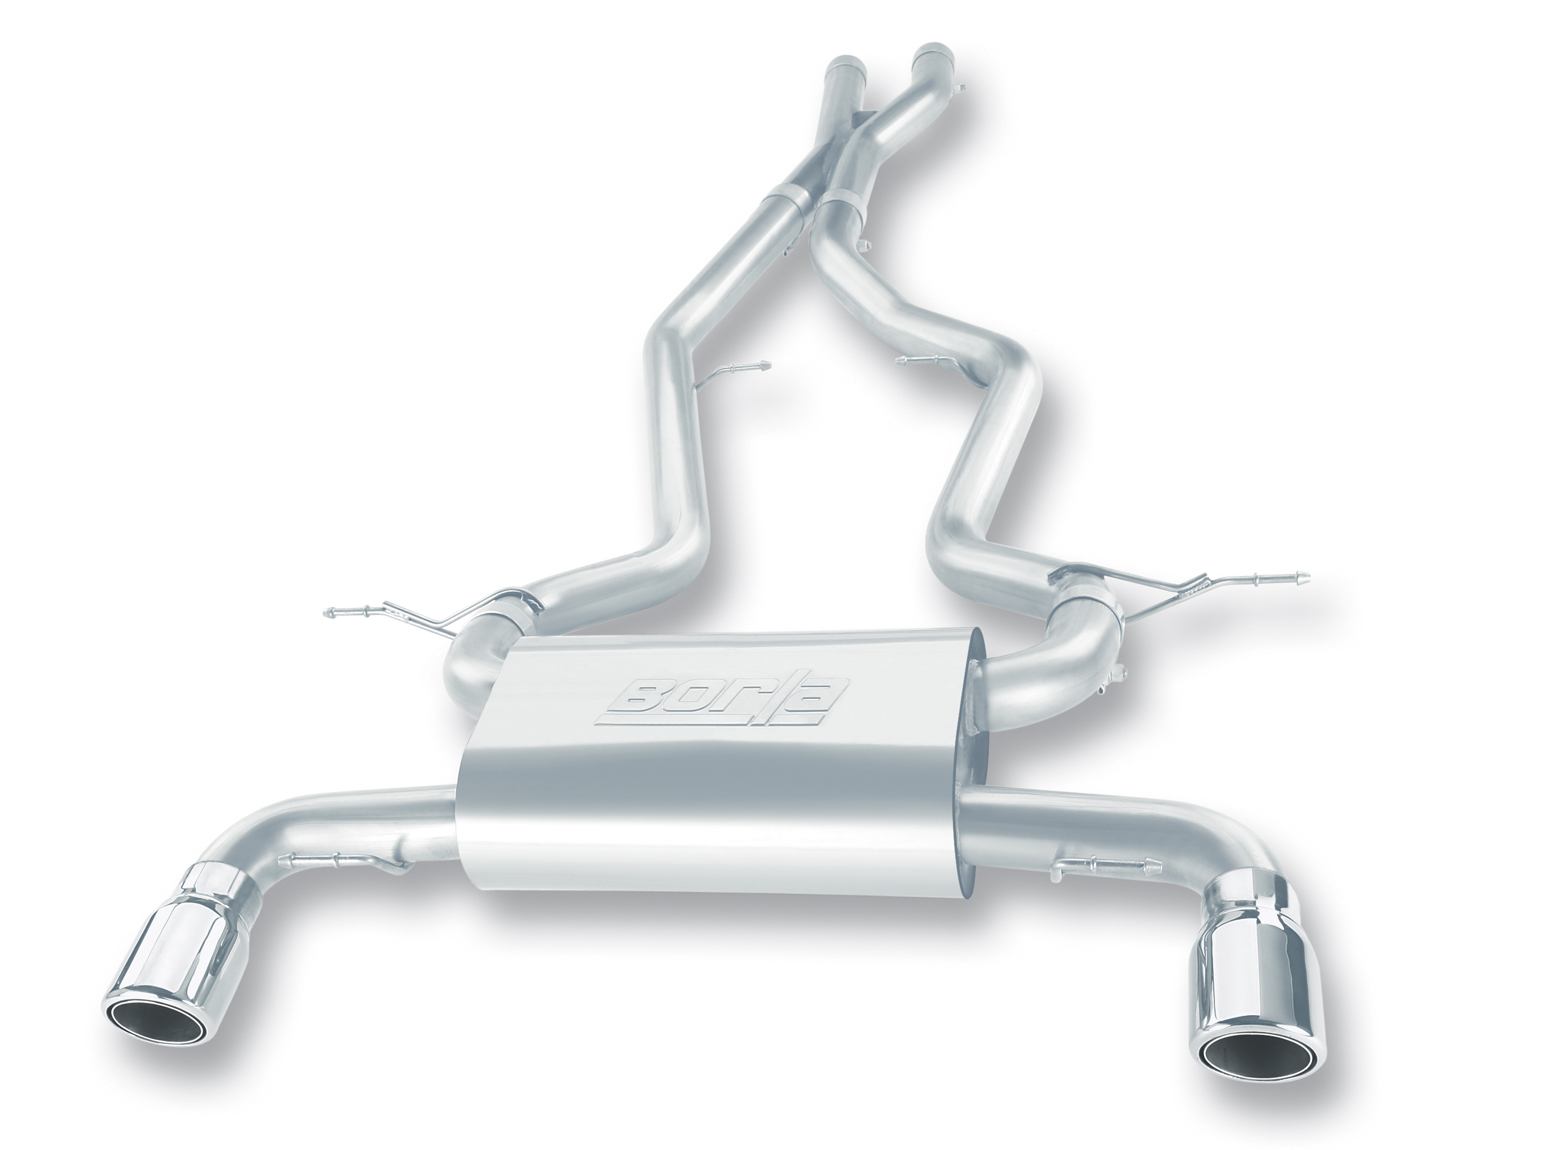 "Bmw 3 Series 335i/Xi Sedan E90 2007-2010 Borla 2.5"" Cat-Back Exhaust System - Single Round Rolled Angle-Cut Lined"